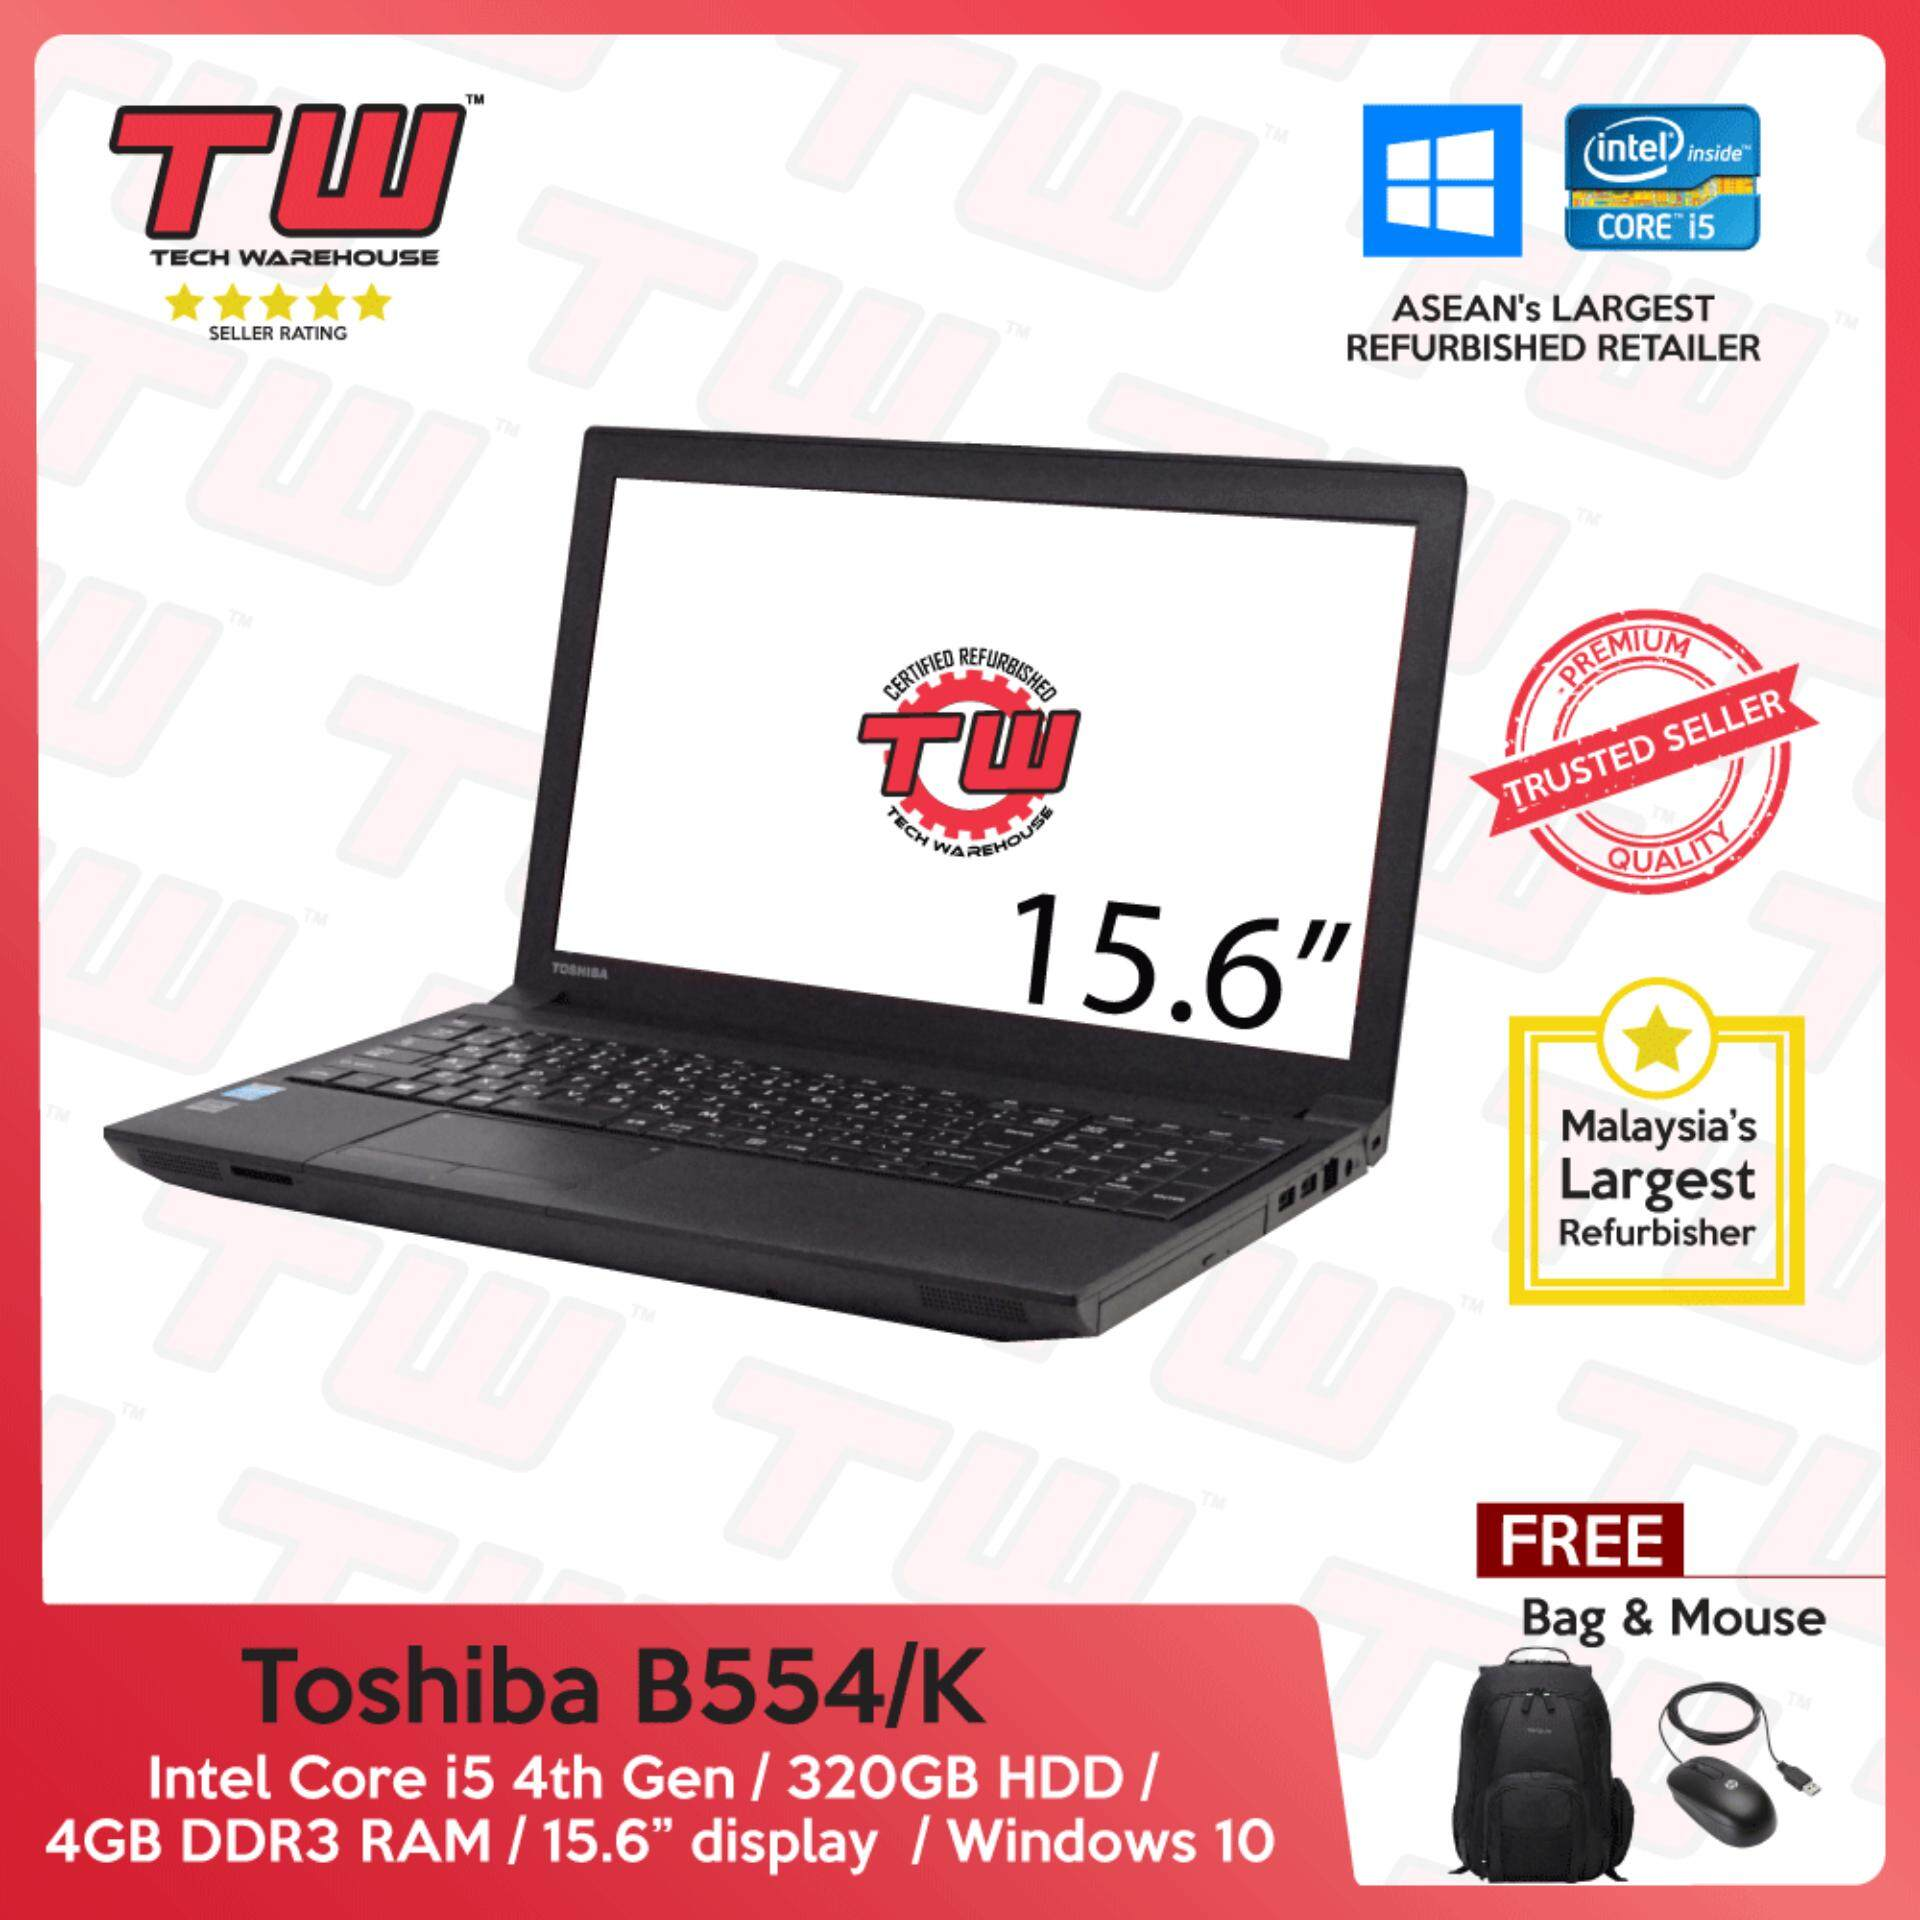 Toshiba Notebook B554/K Core i5 4th Gen 2.50GHz / 4GB RAM / 320GB HDD / Windows 10 Home Laptop / 3 Month Warranty (Factory Refurbished) Malaysia